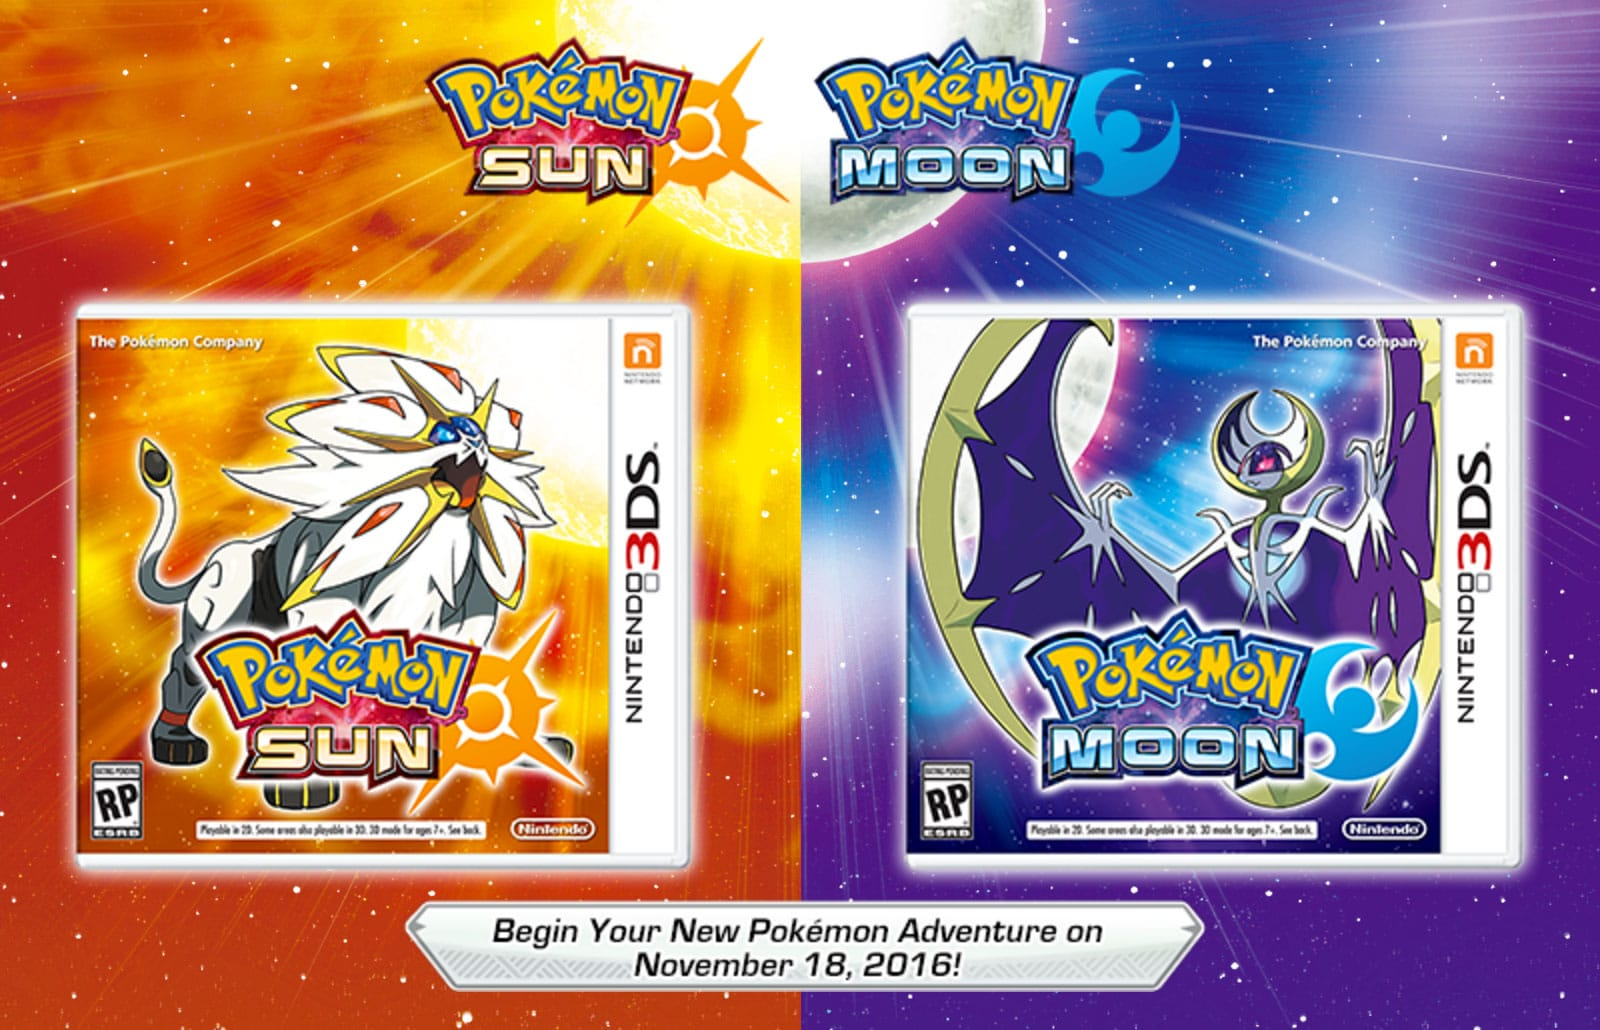 First pokemon game release date in Brisbane